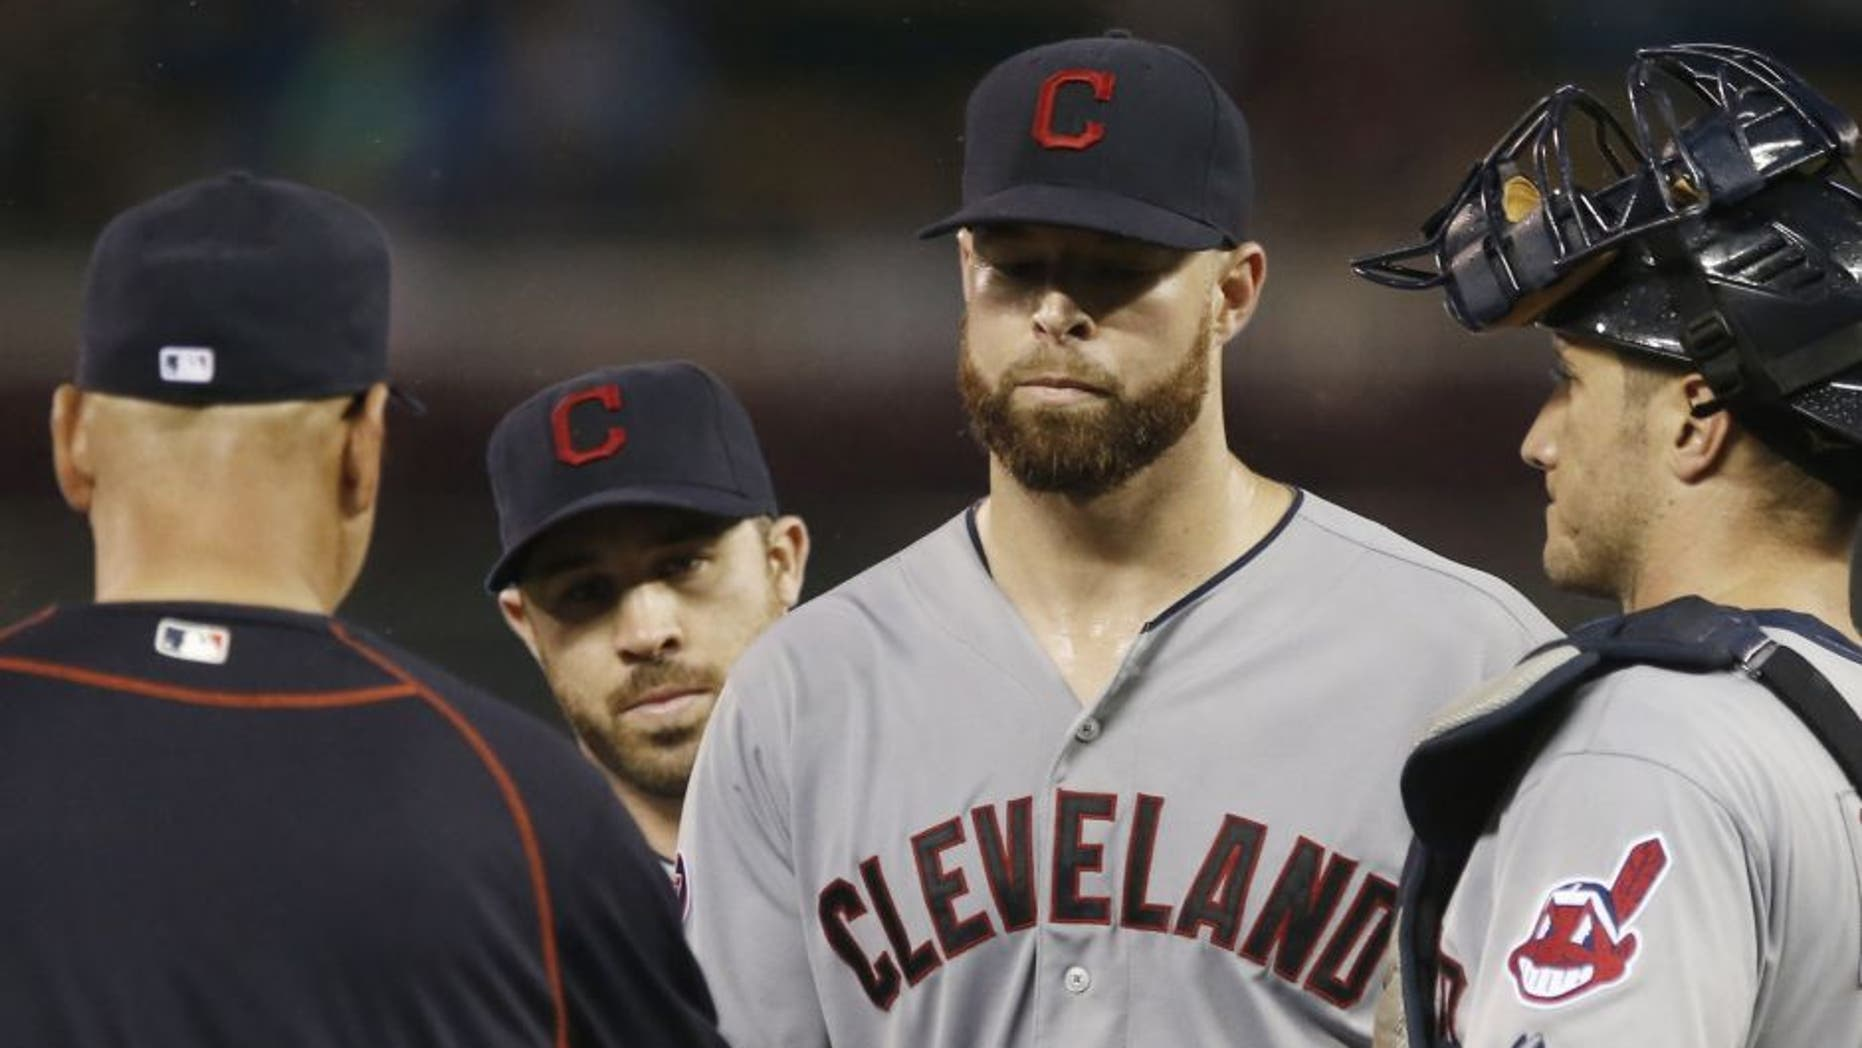 Cleveland Indians pitcher Corey Kluber, center, hands over the ball to manager Terry Francona as he is pulled after giving up four runs to the Minnesota Twins in the fourth inning of a baseball game, Wednesday, Sept. 23, 2015, in Minneapolis.